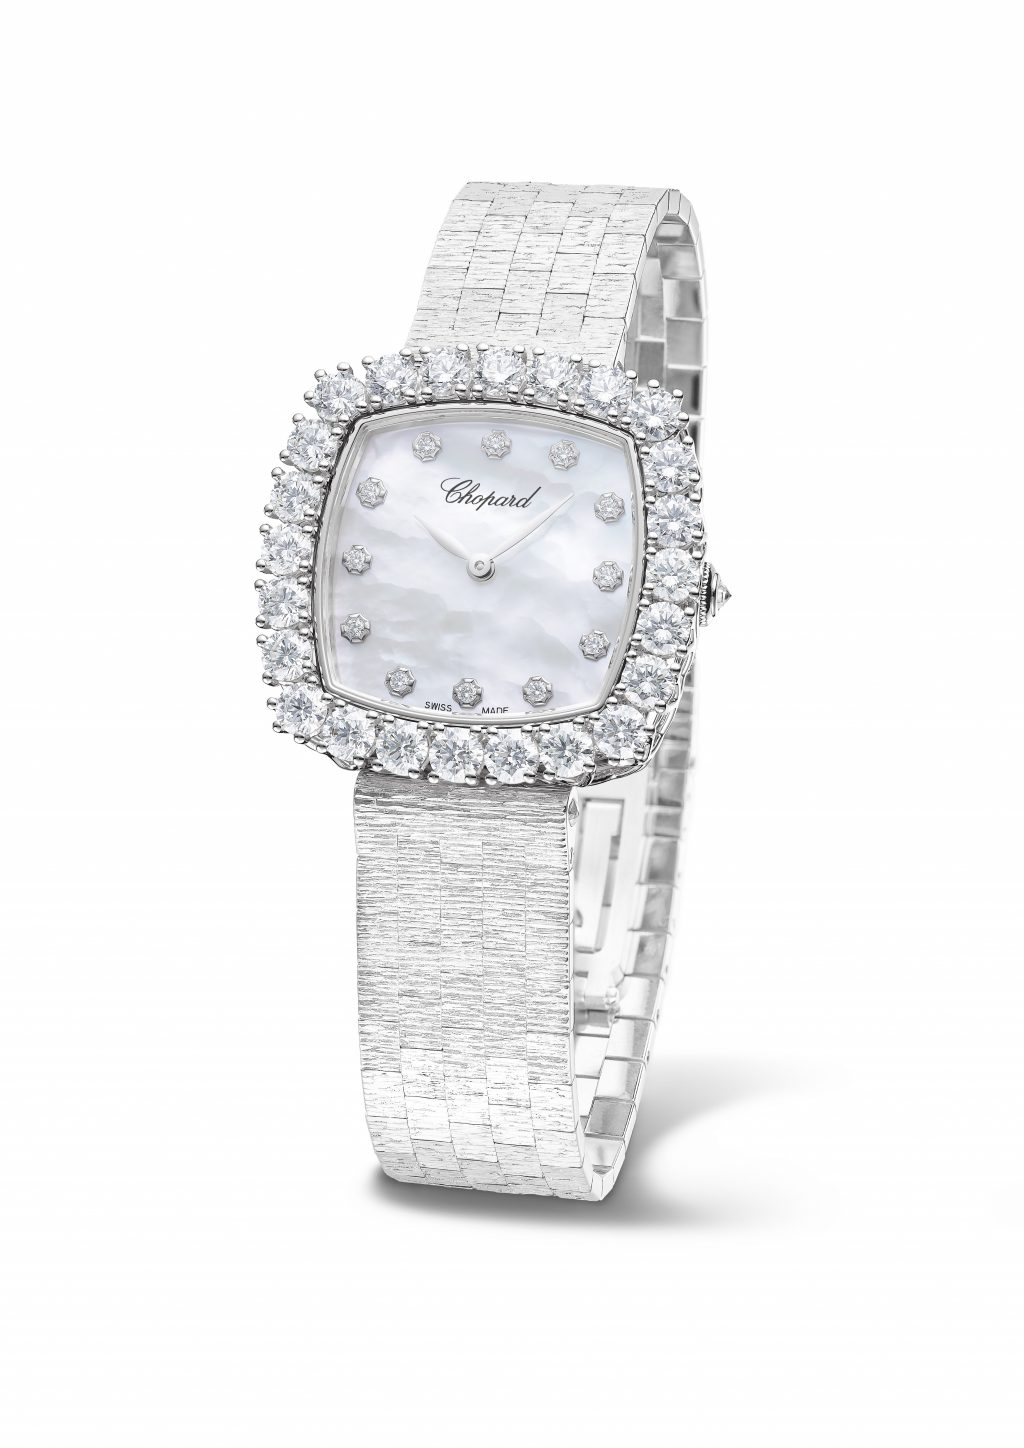 Chopard 'L'Heure du Diamant' watch